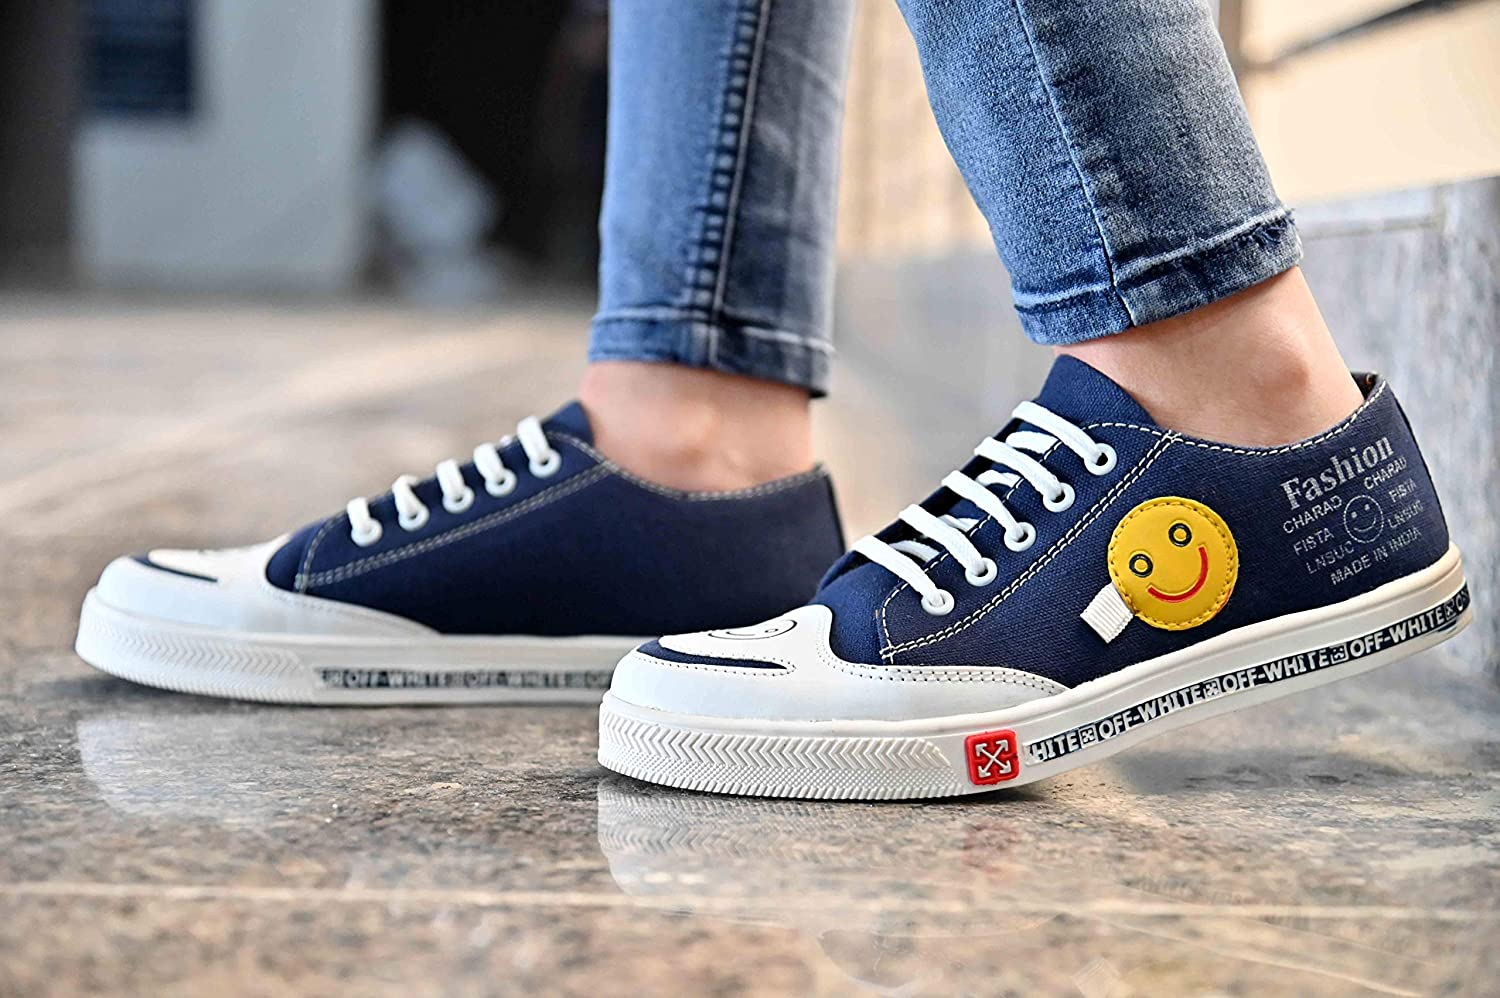 New Fashion Stylish Casual Unisex Sneakers Shoes